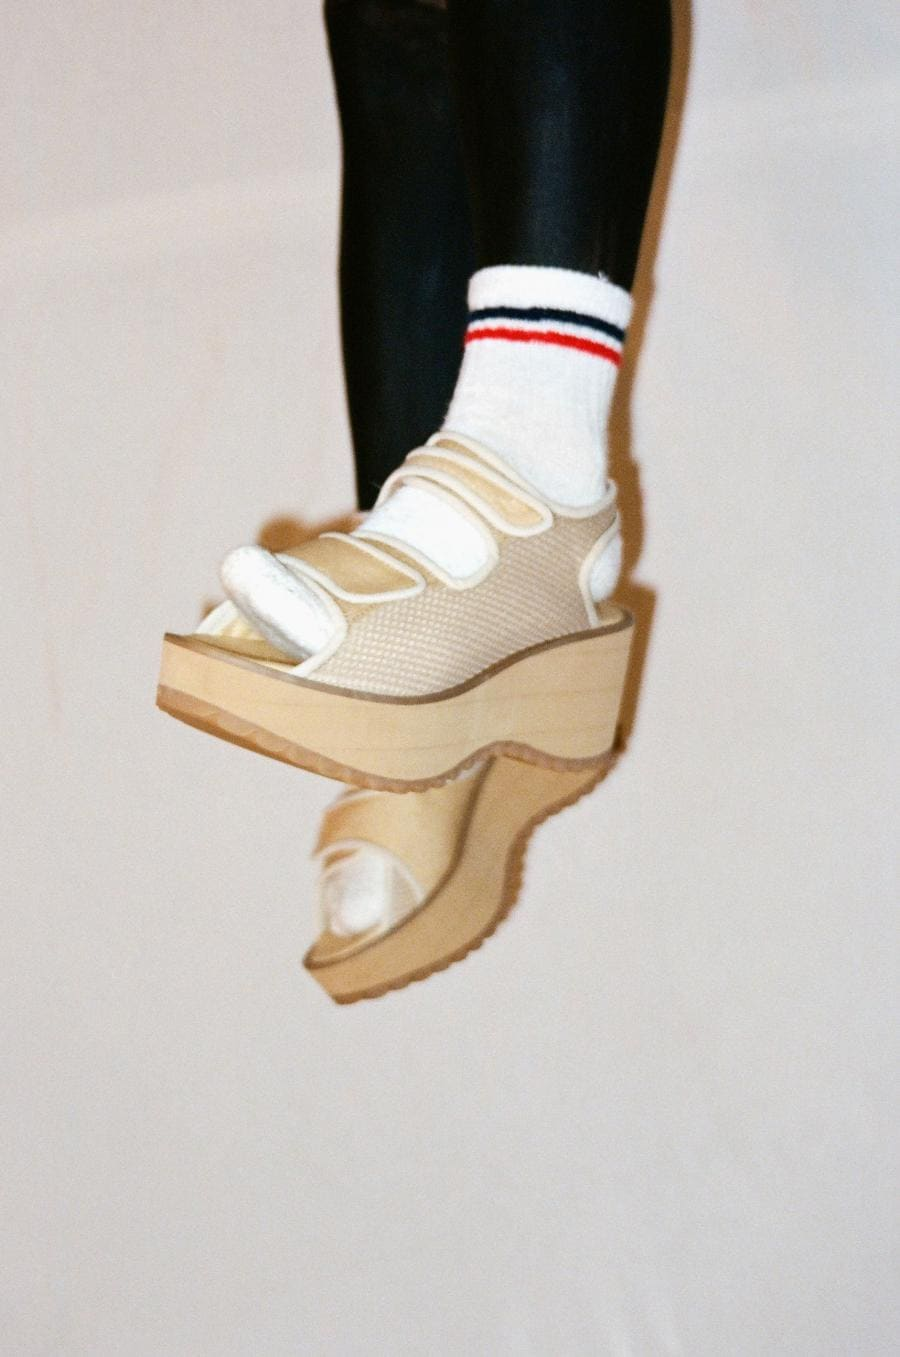 experimental footwear Collection with architectural waste wood